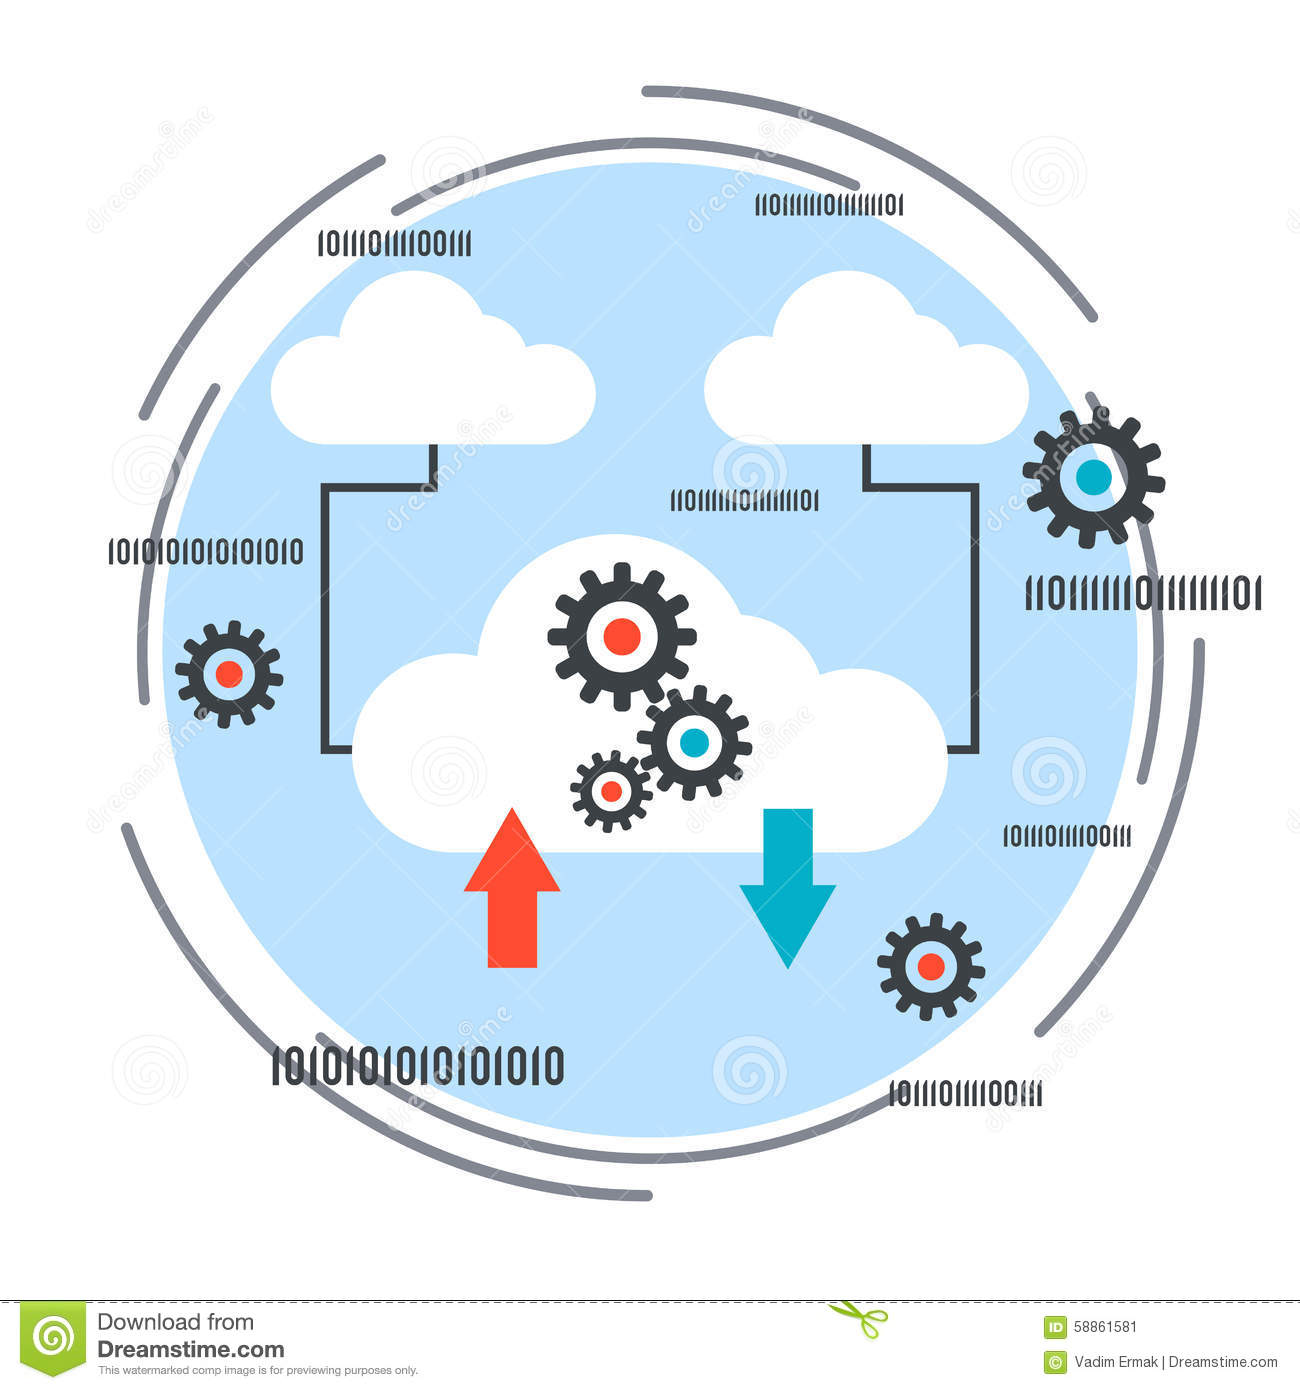 cloud computing remote control shared resources networking cloud computing remote control shared resources networking vector concept